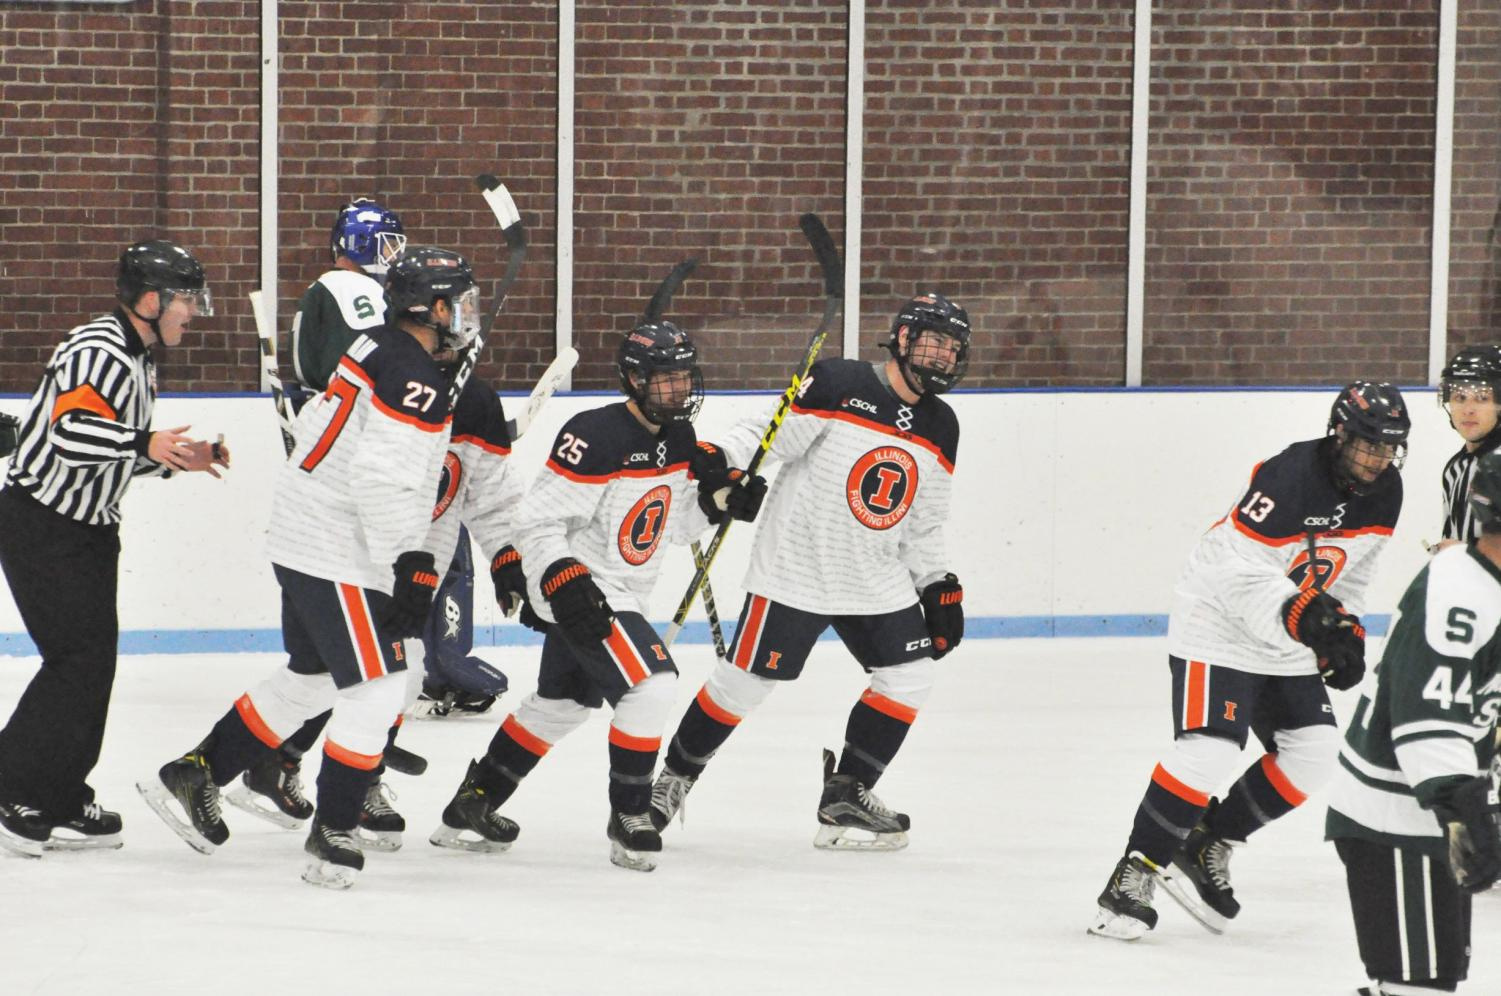 Illinois club hockey players take the ice against Michigan State on Sept. 28-29 at the University of Illinois Ice Arena.